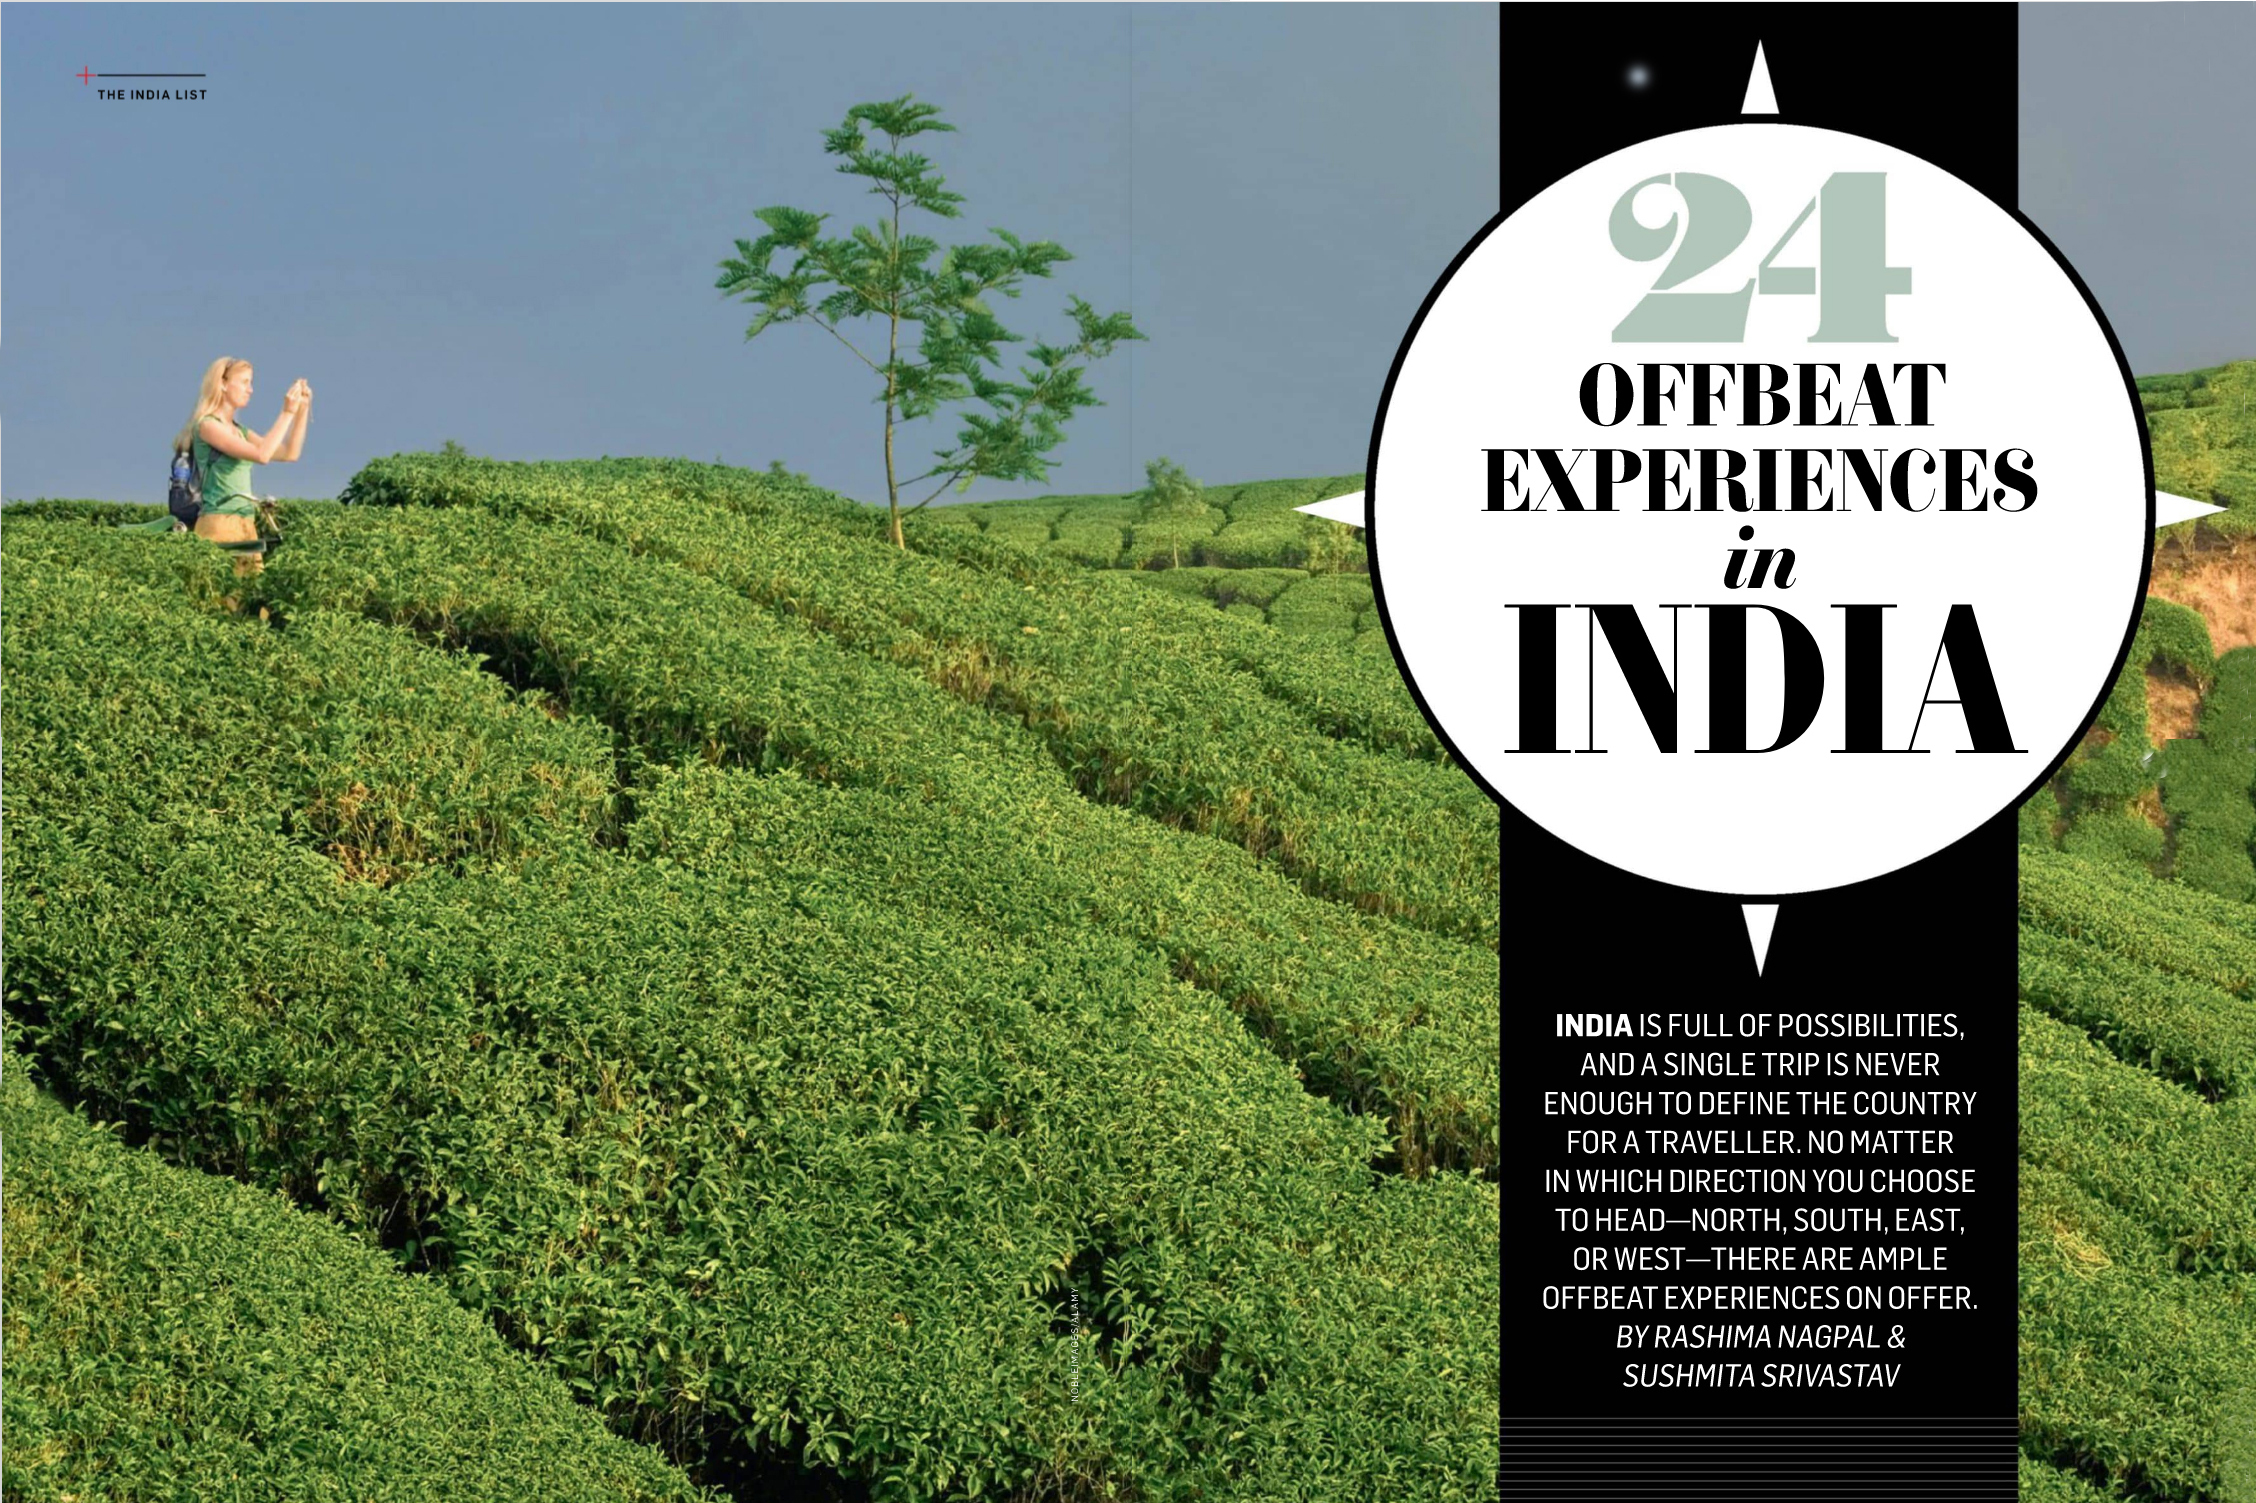 Travel+Leisure India (Part 1) August 2019 Issue